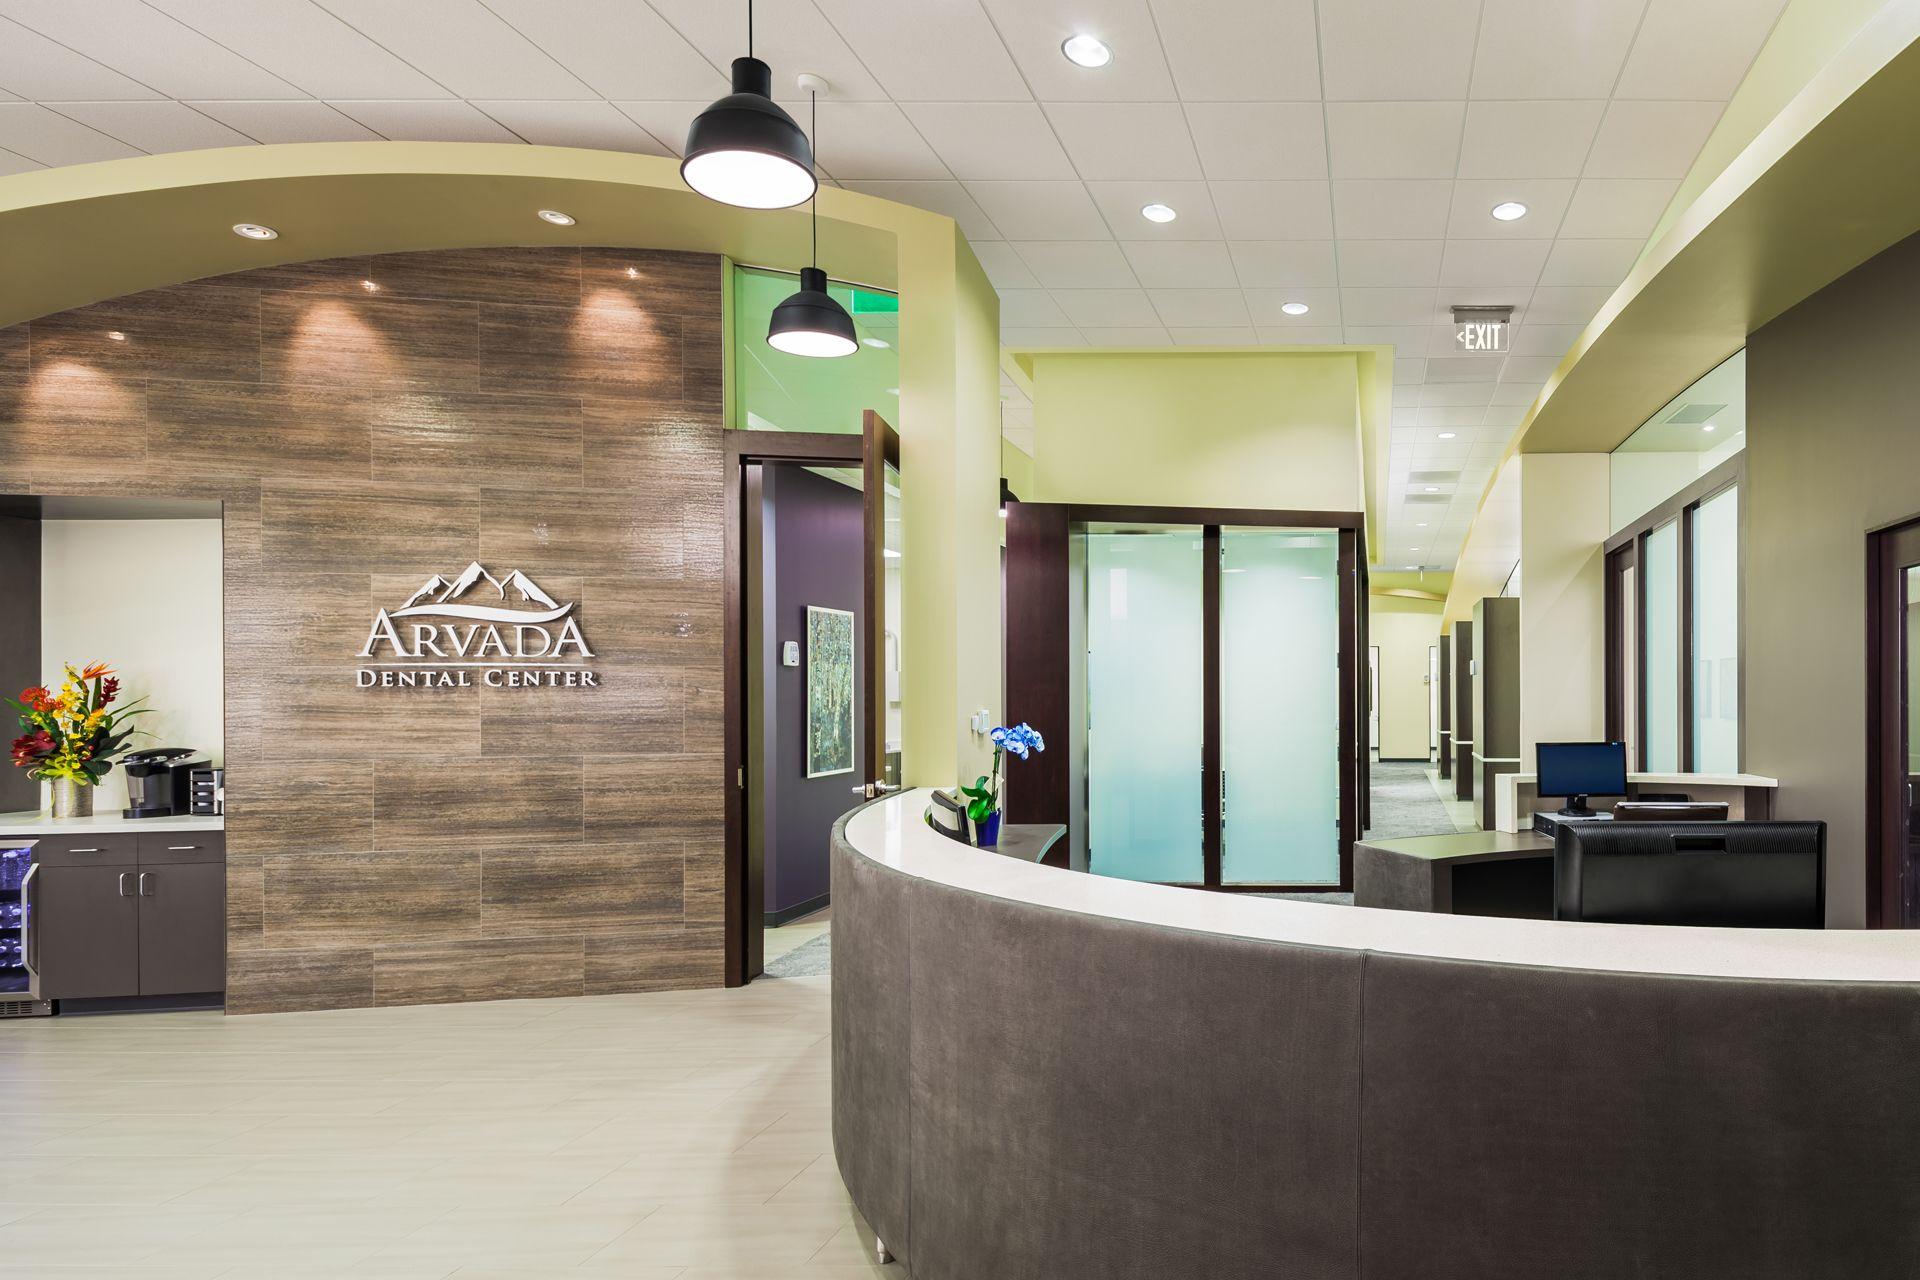 arvada dental center dental office design by joearchitect office ideas pinterest dental